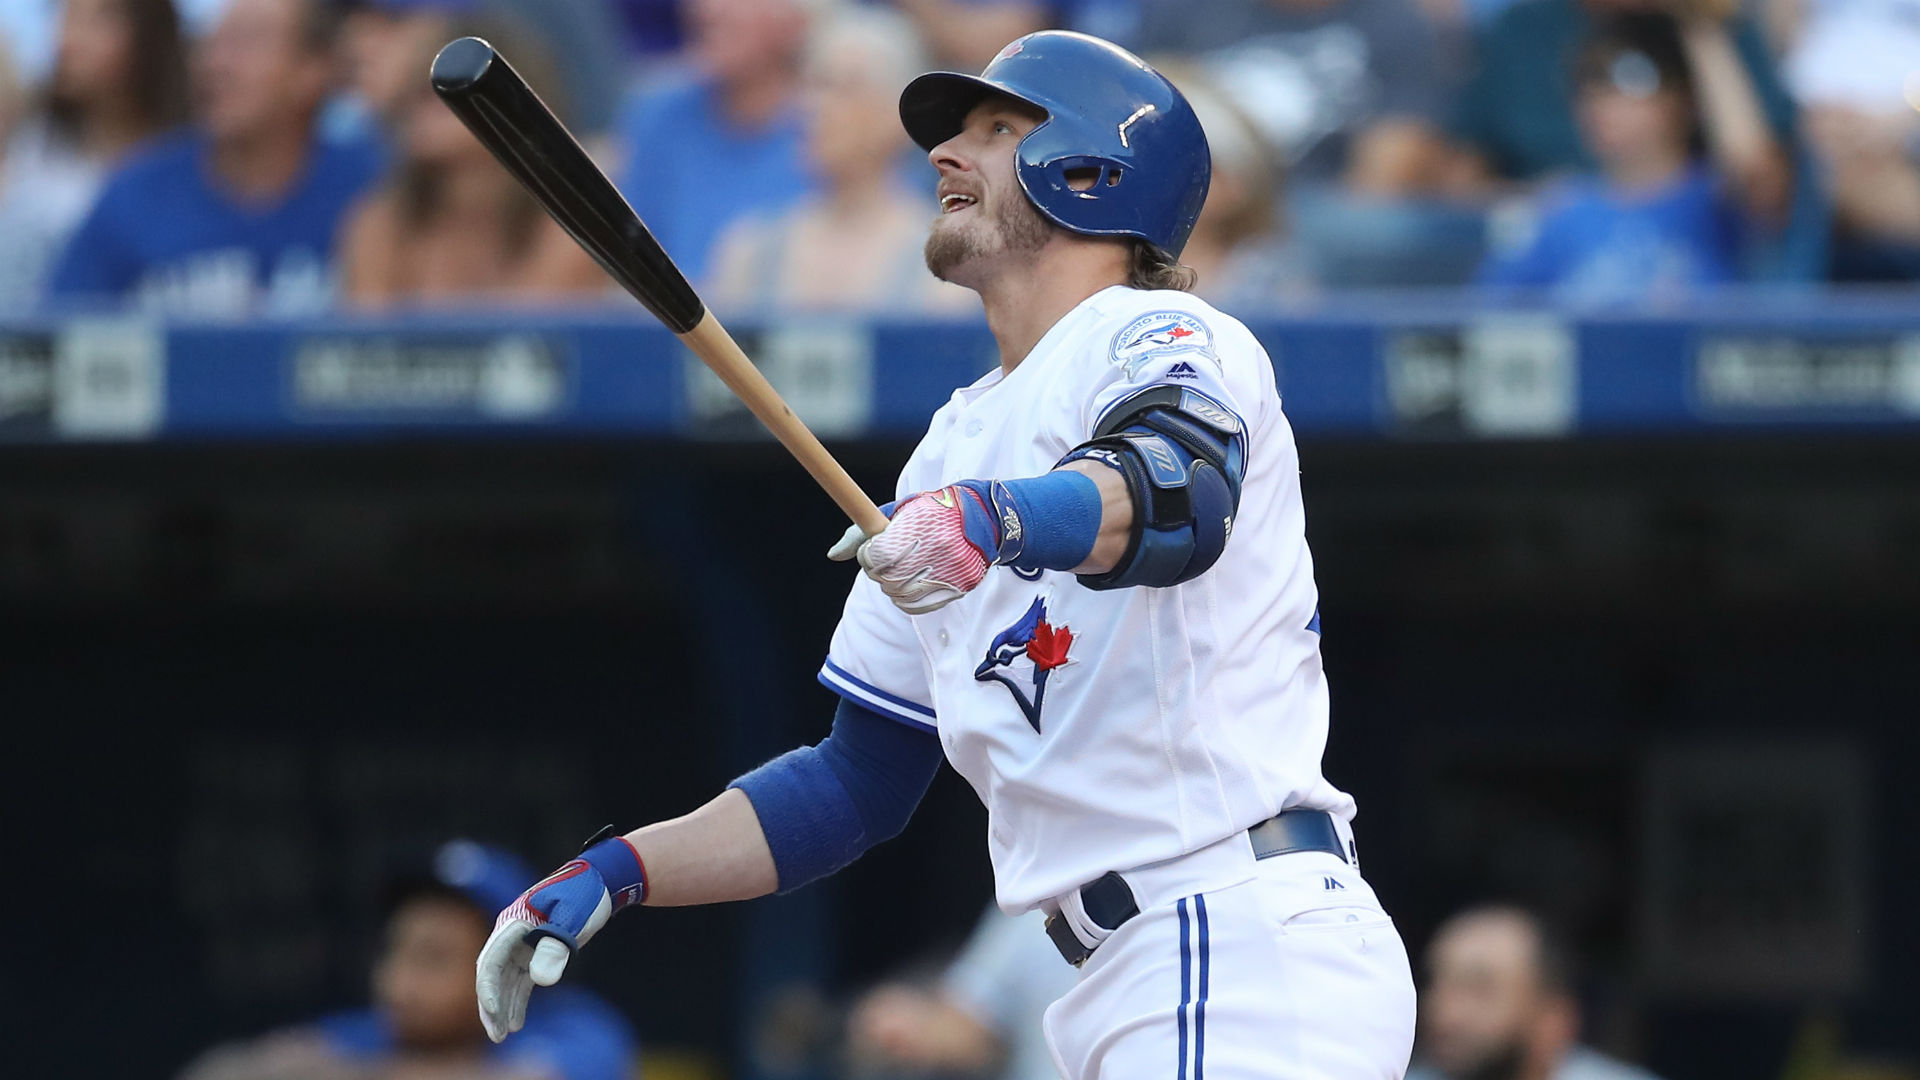 MLB Rumors: Indians Acquire Josh Donaldson In Trade With Blue Jays